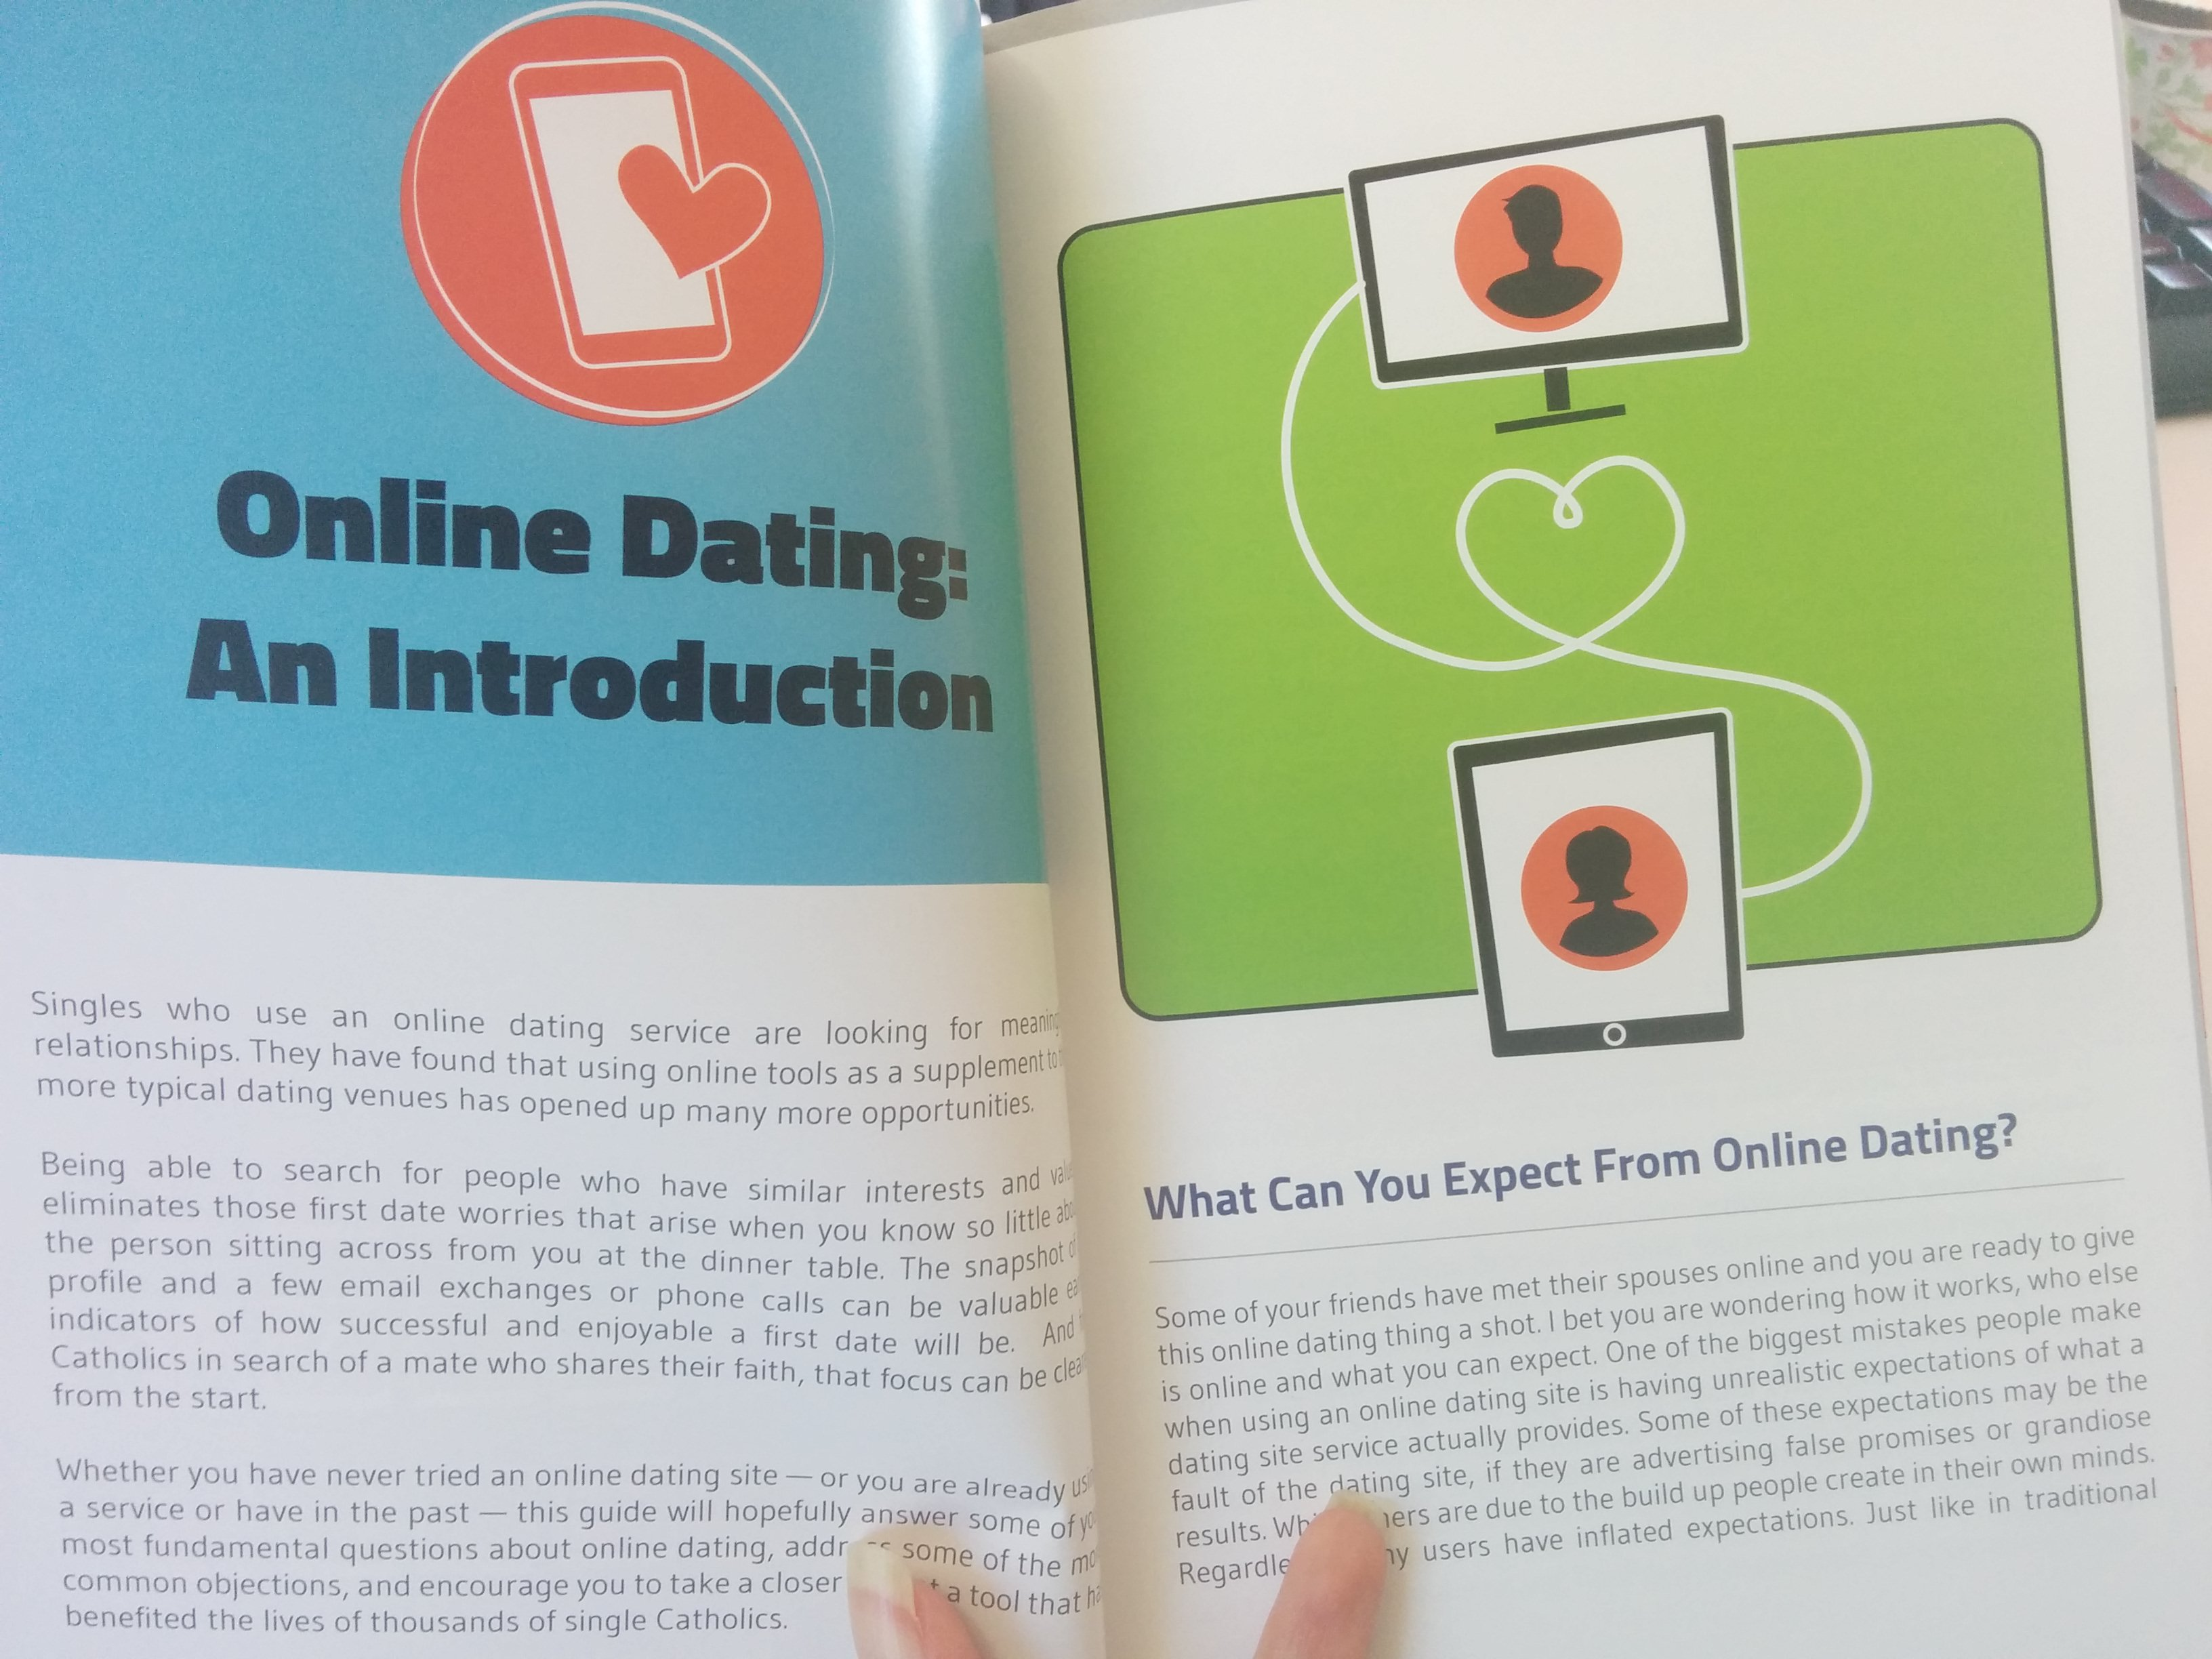 internet dating guide Dating tips for men about you  i've done online dating now for about a year in my case,  by paulette cohn for eharmony advice.